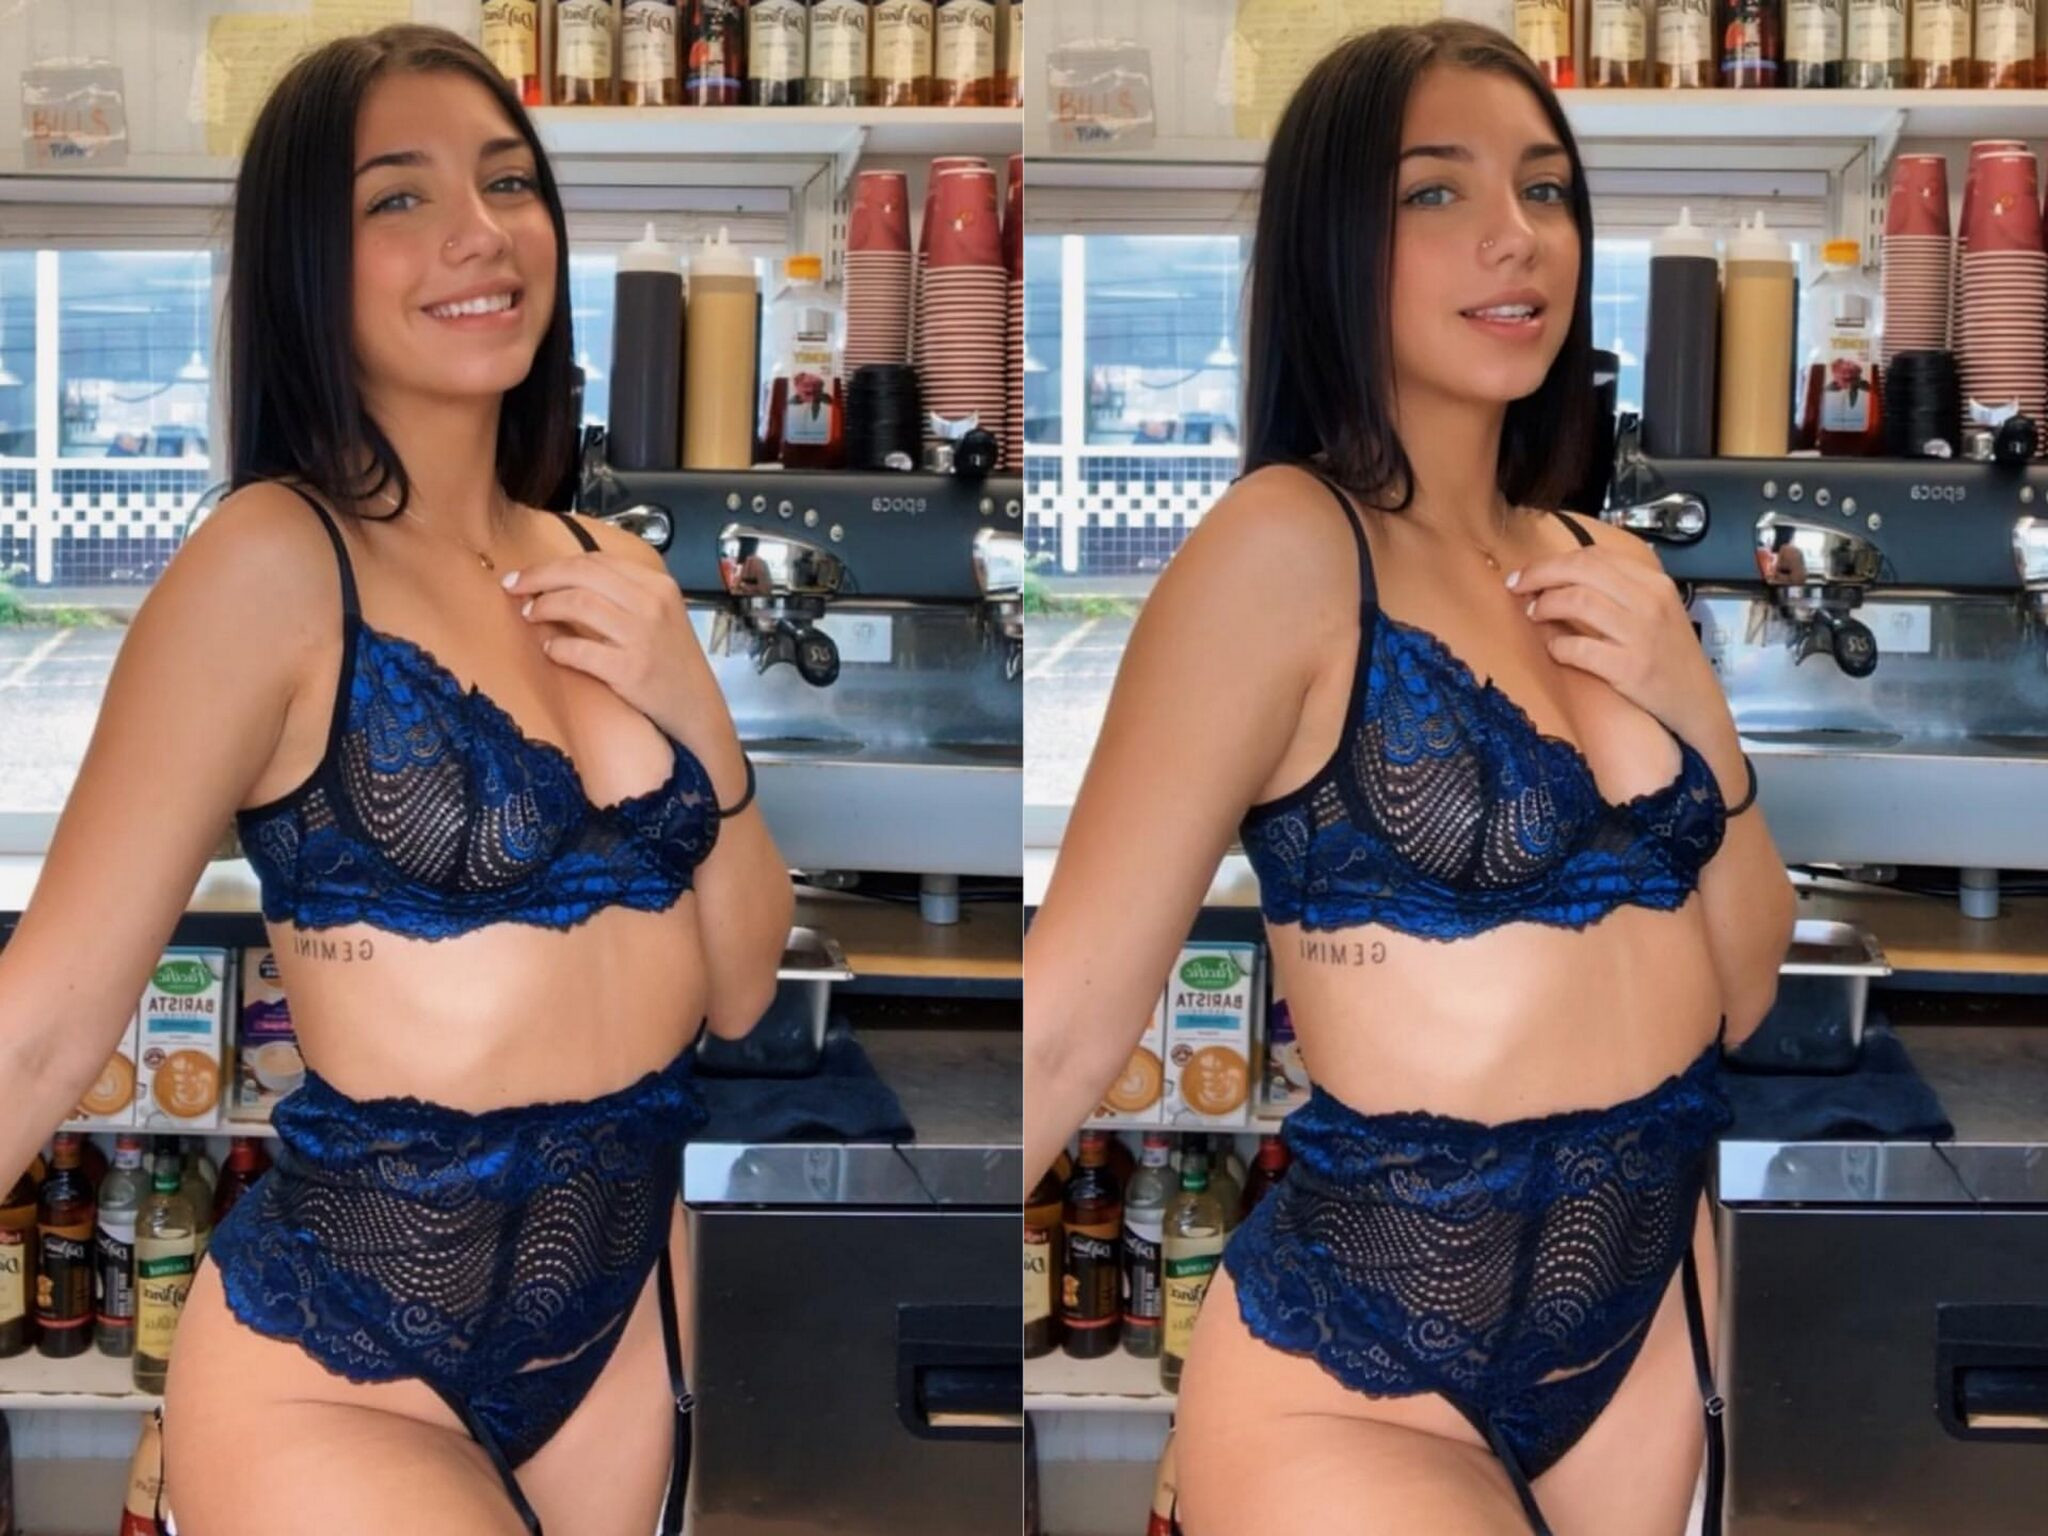 baristaalix Onlyfans Leaked Nude Photos fappenings.com 73